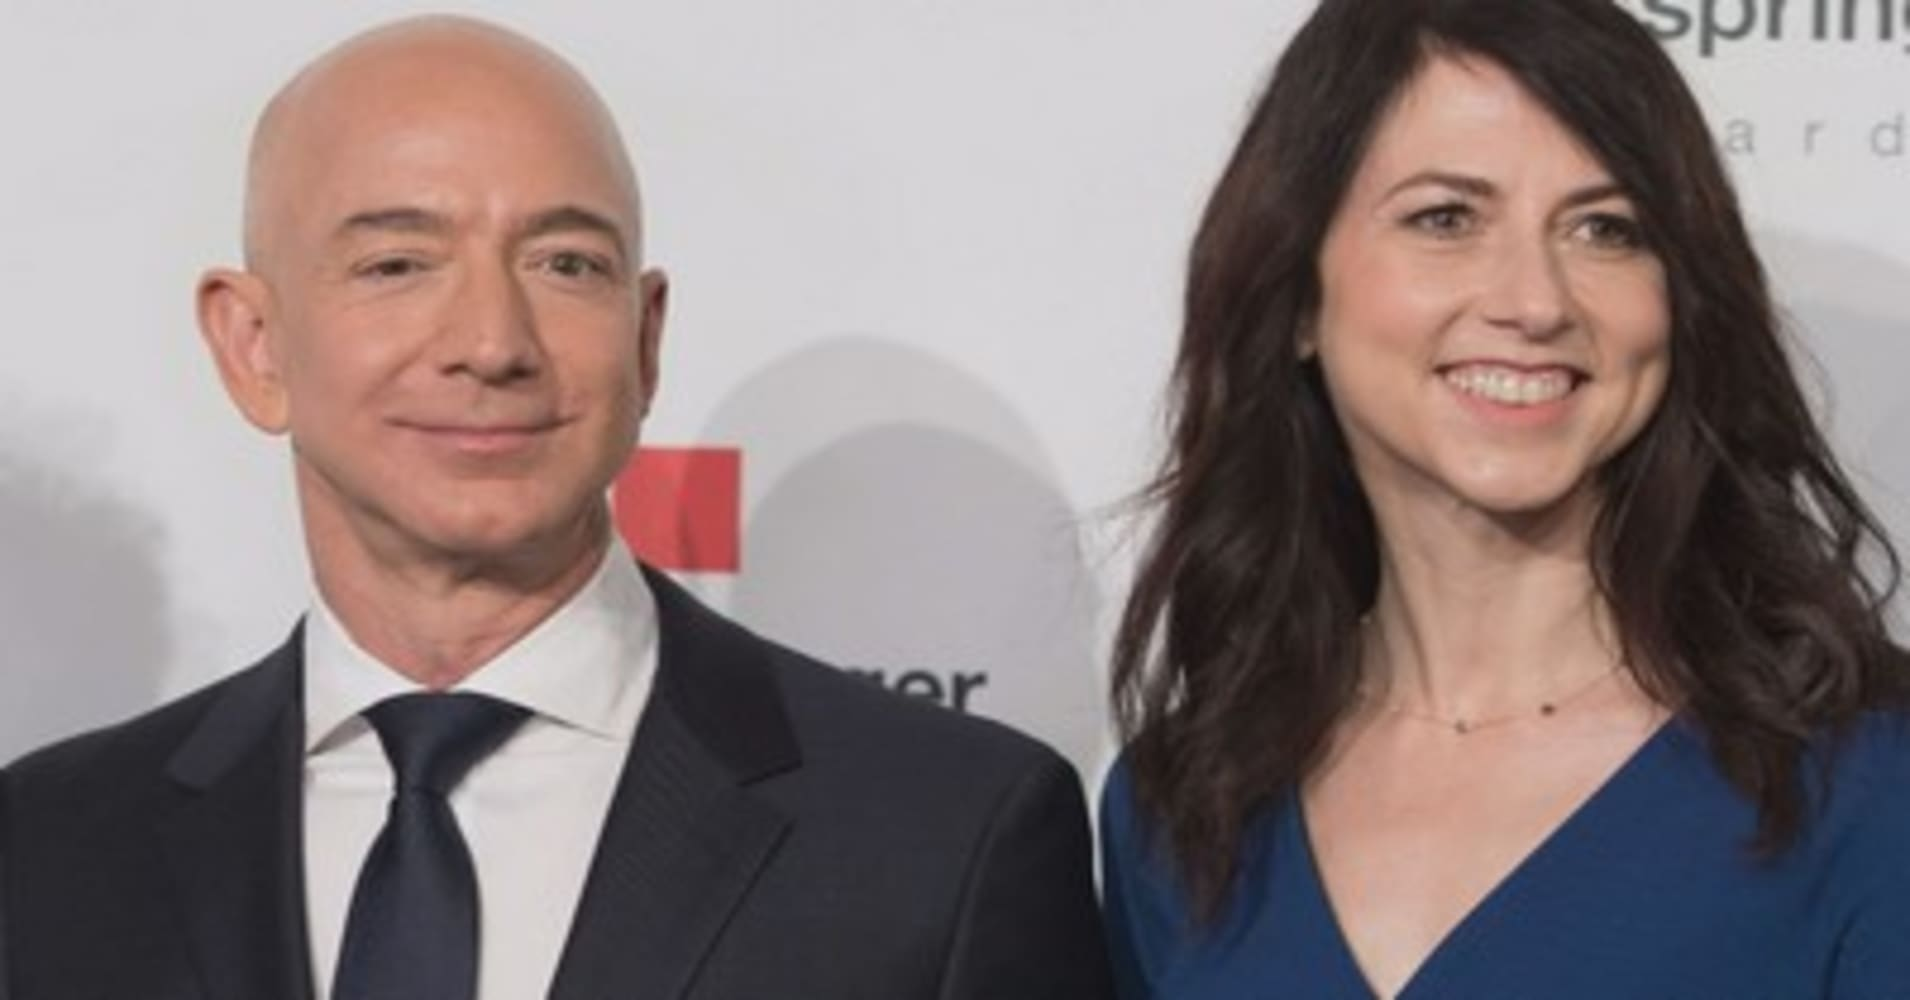 Amazon's Jeff Bezos and wife MacKenzie announce amicable divorce